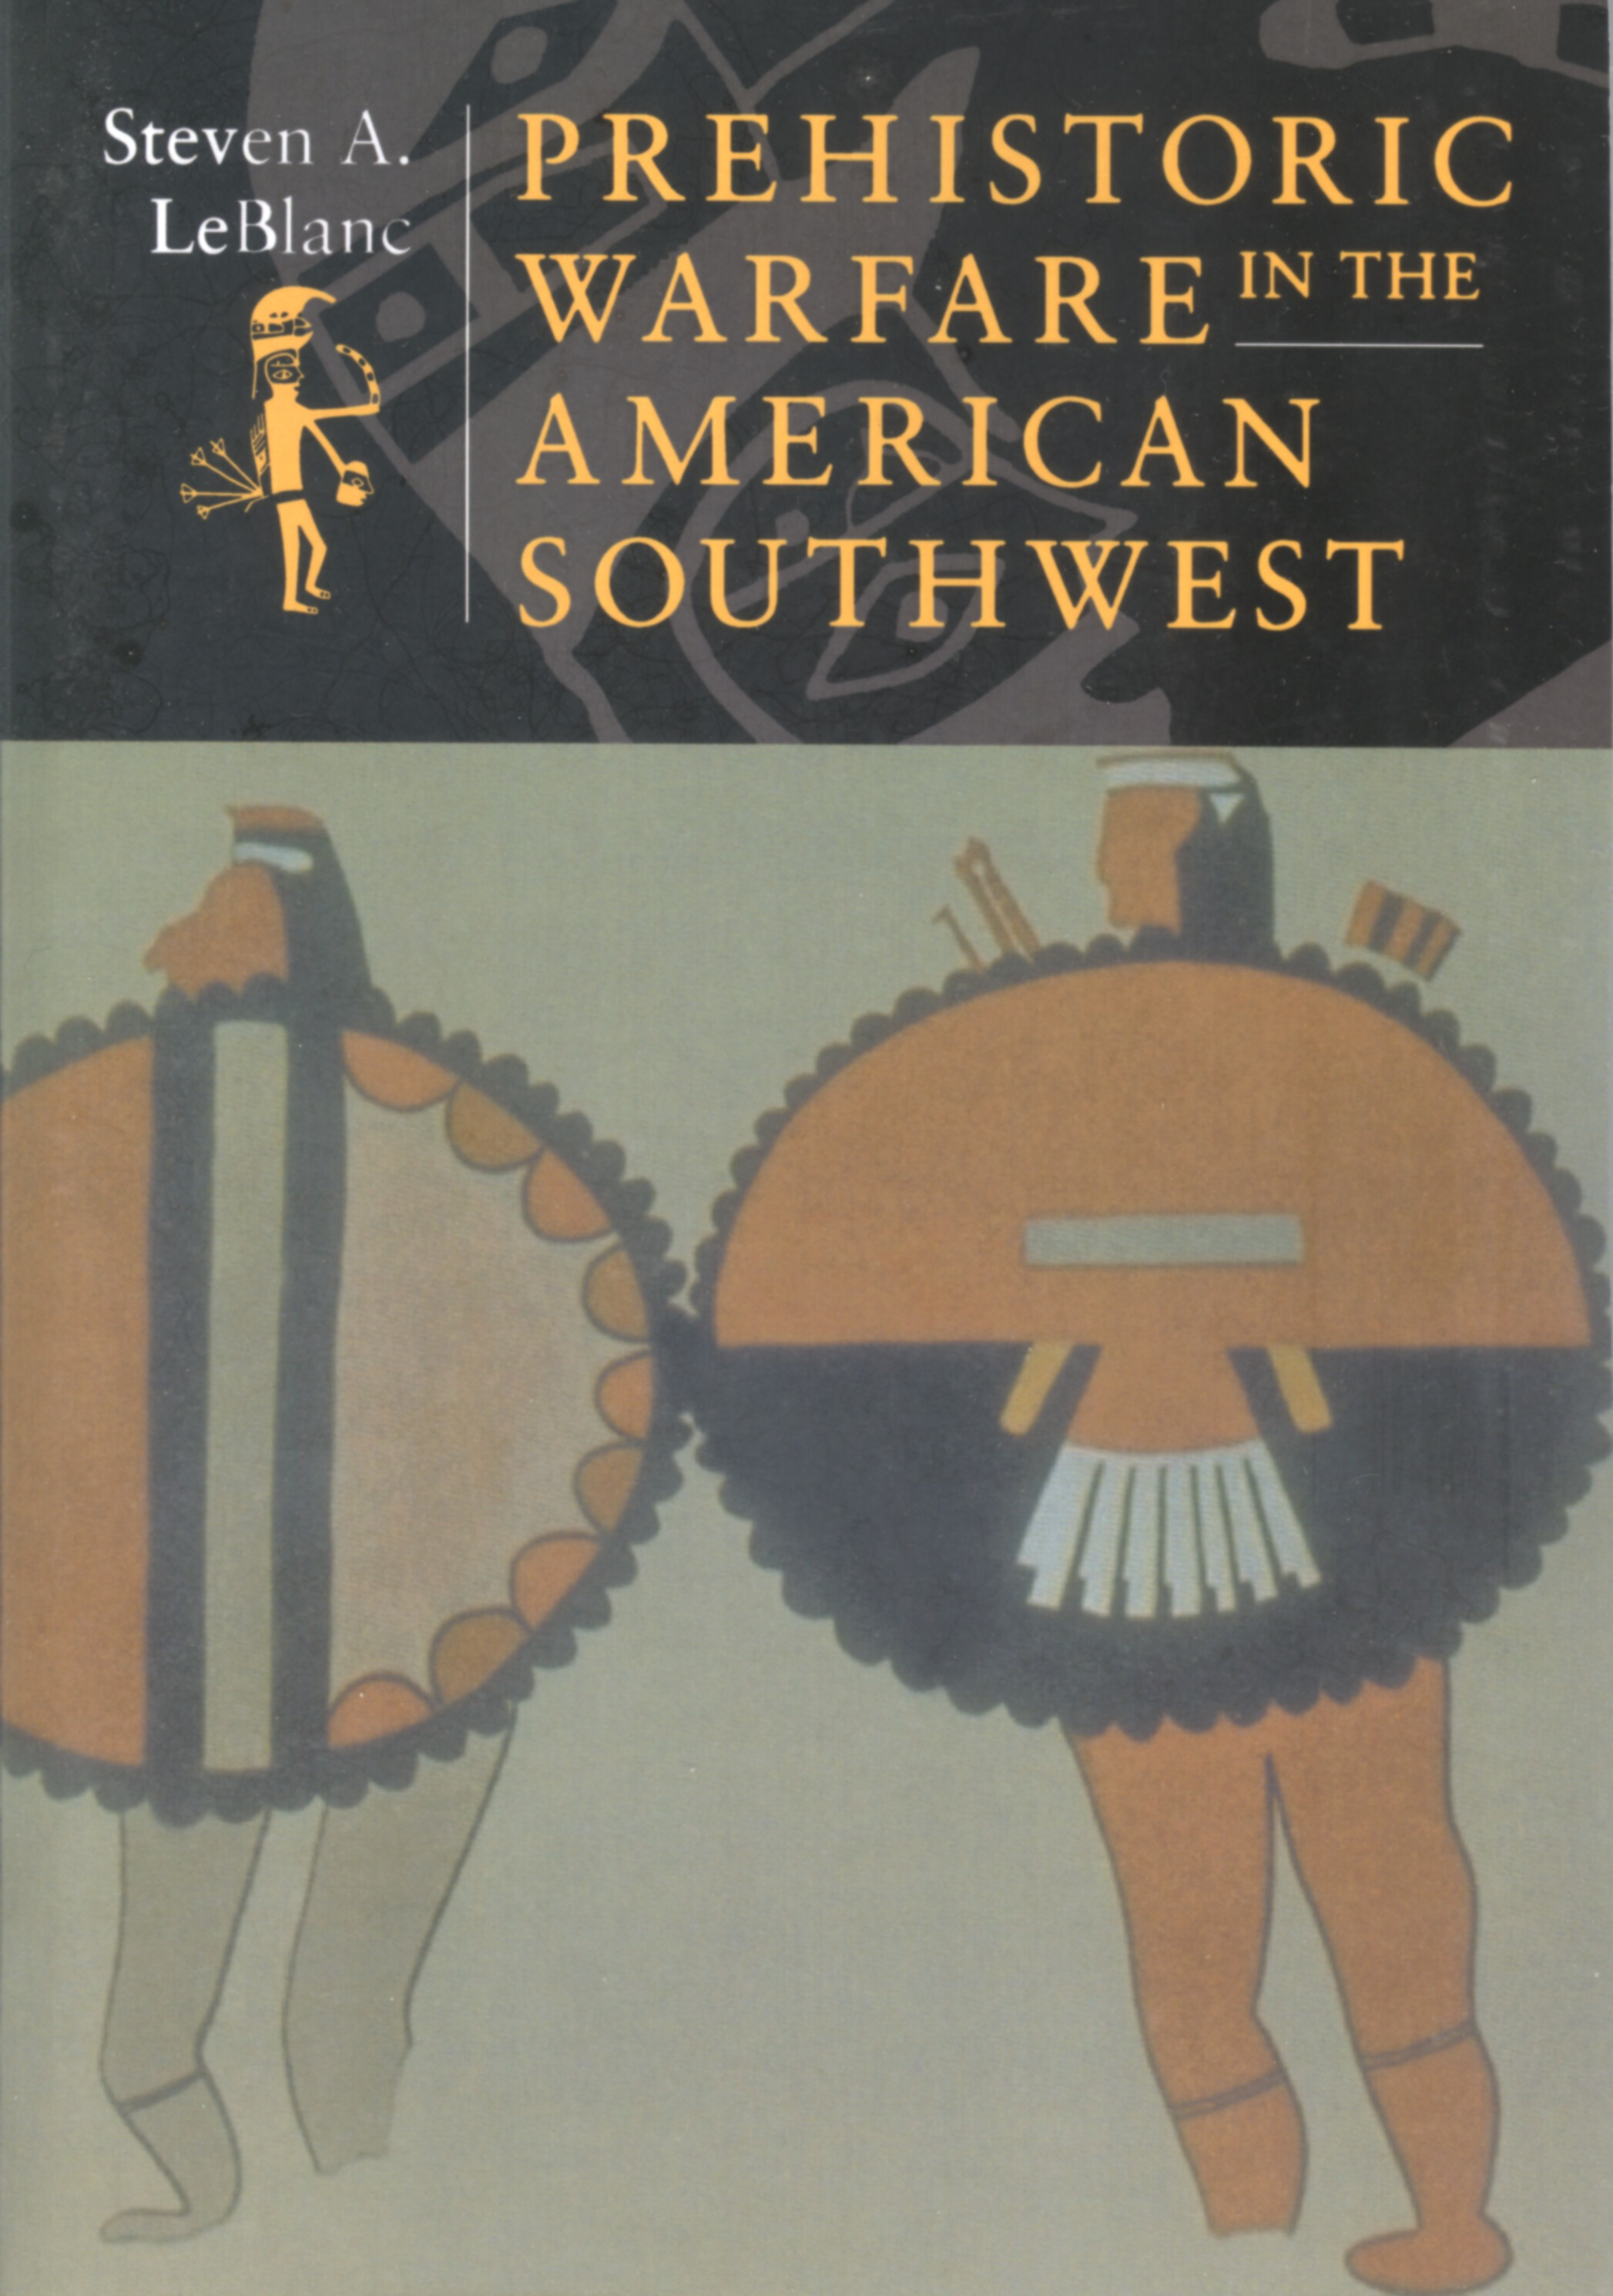 Prehistoric warfare in the American Southwest - Steven A. LeBlanc (anglicky)